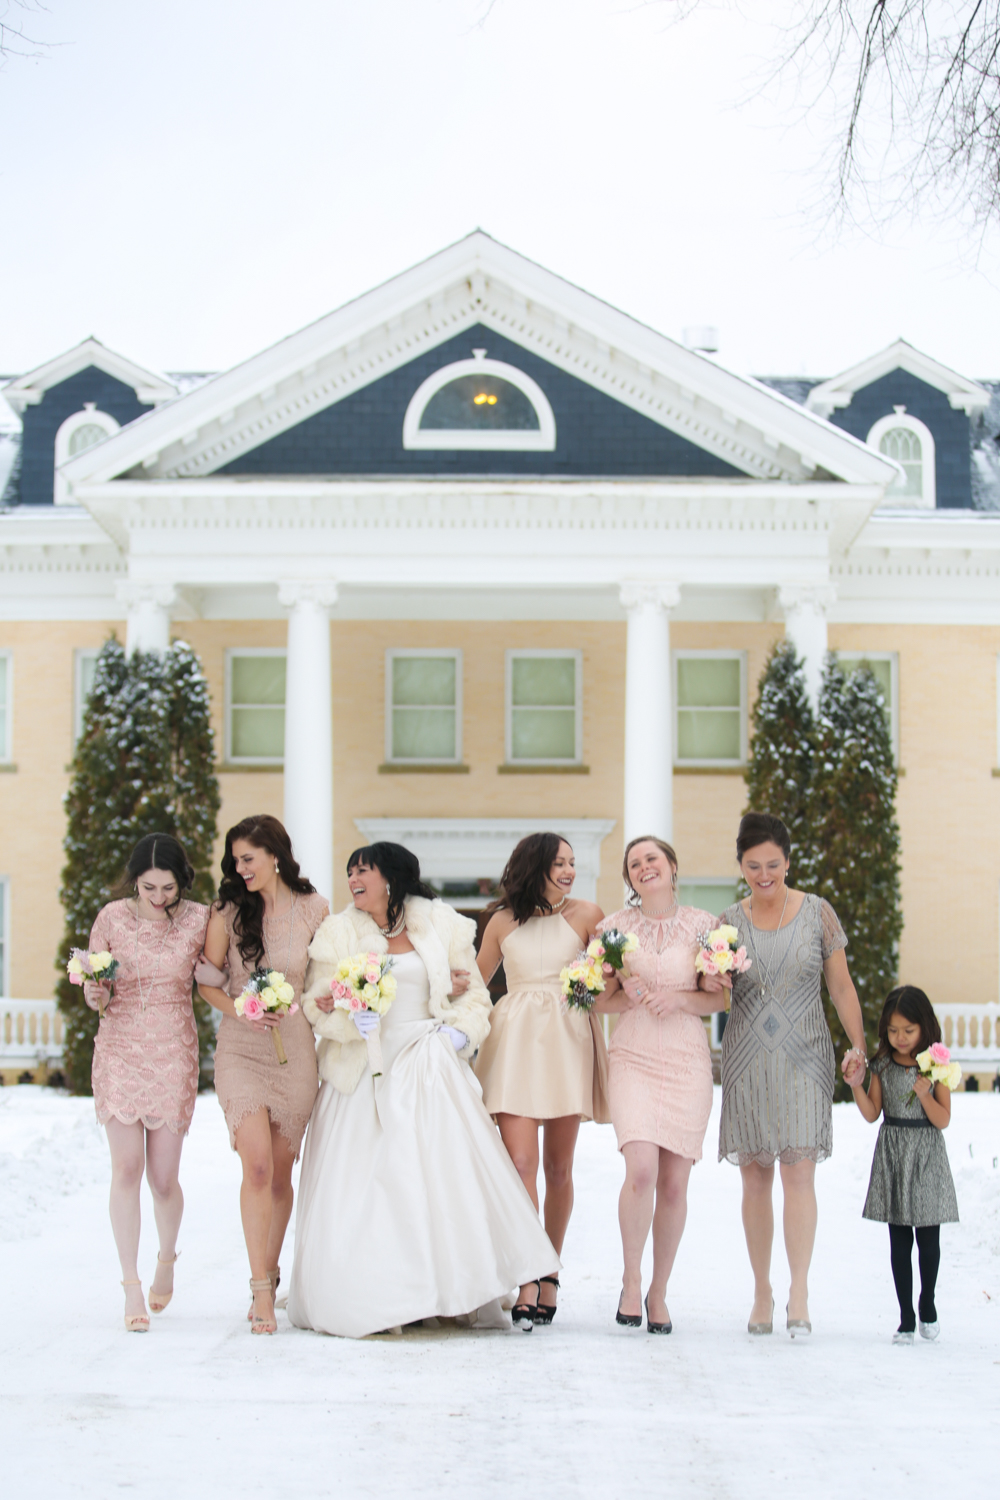 Winter wedding at the Daly Mansion-3439.jpg